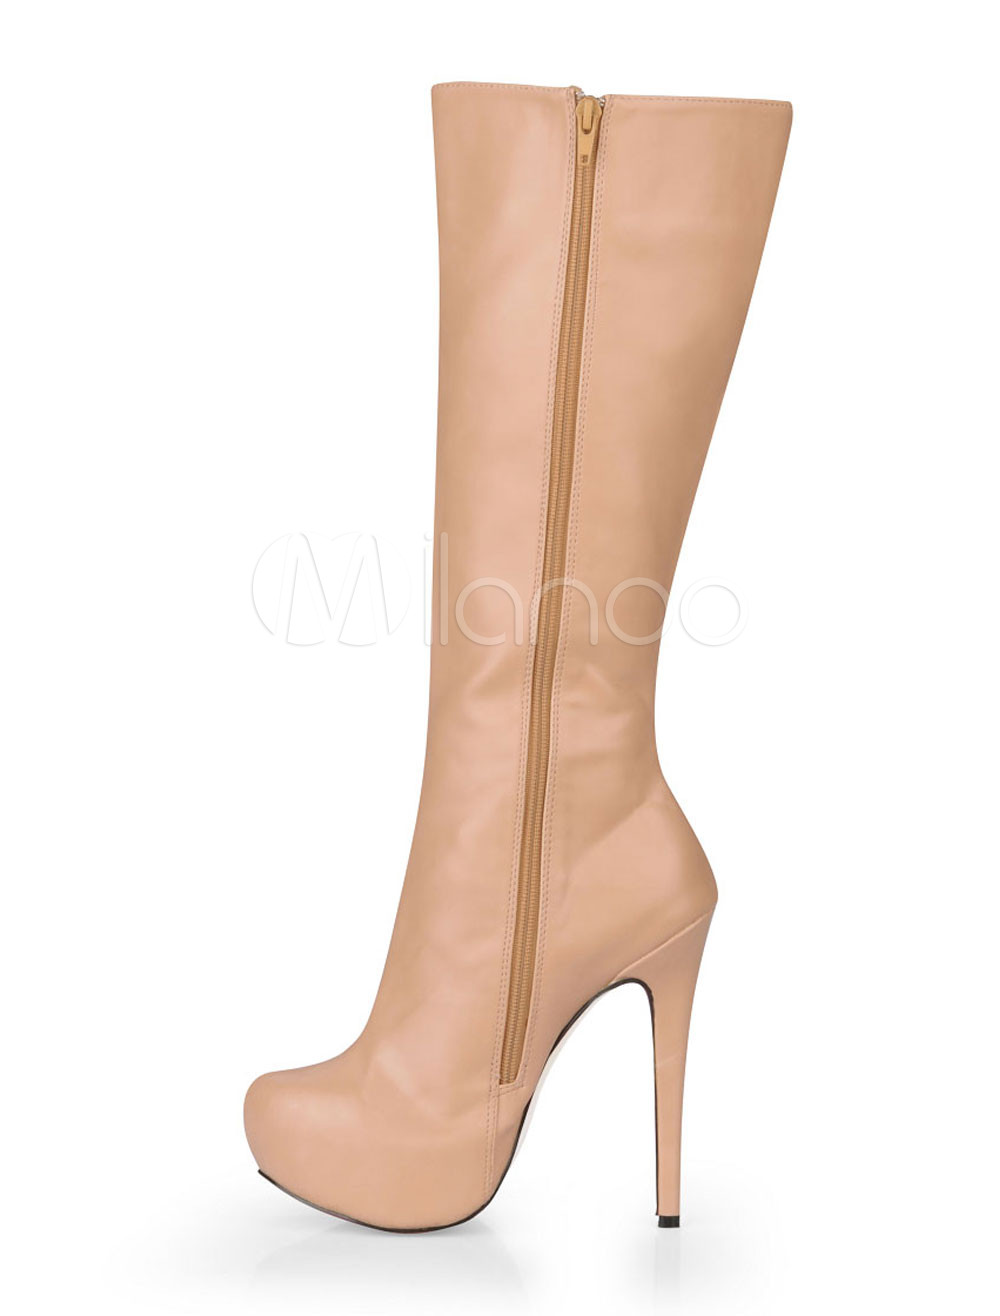 Nude Color Almond Toe PU Knee Length Boots